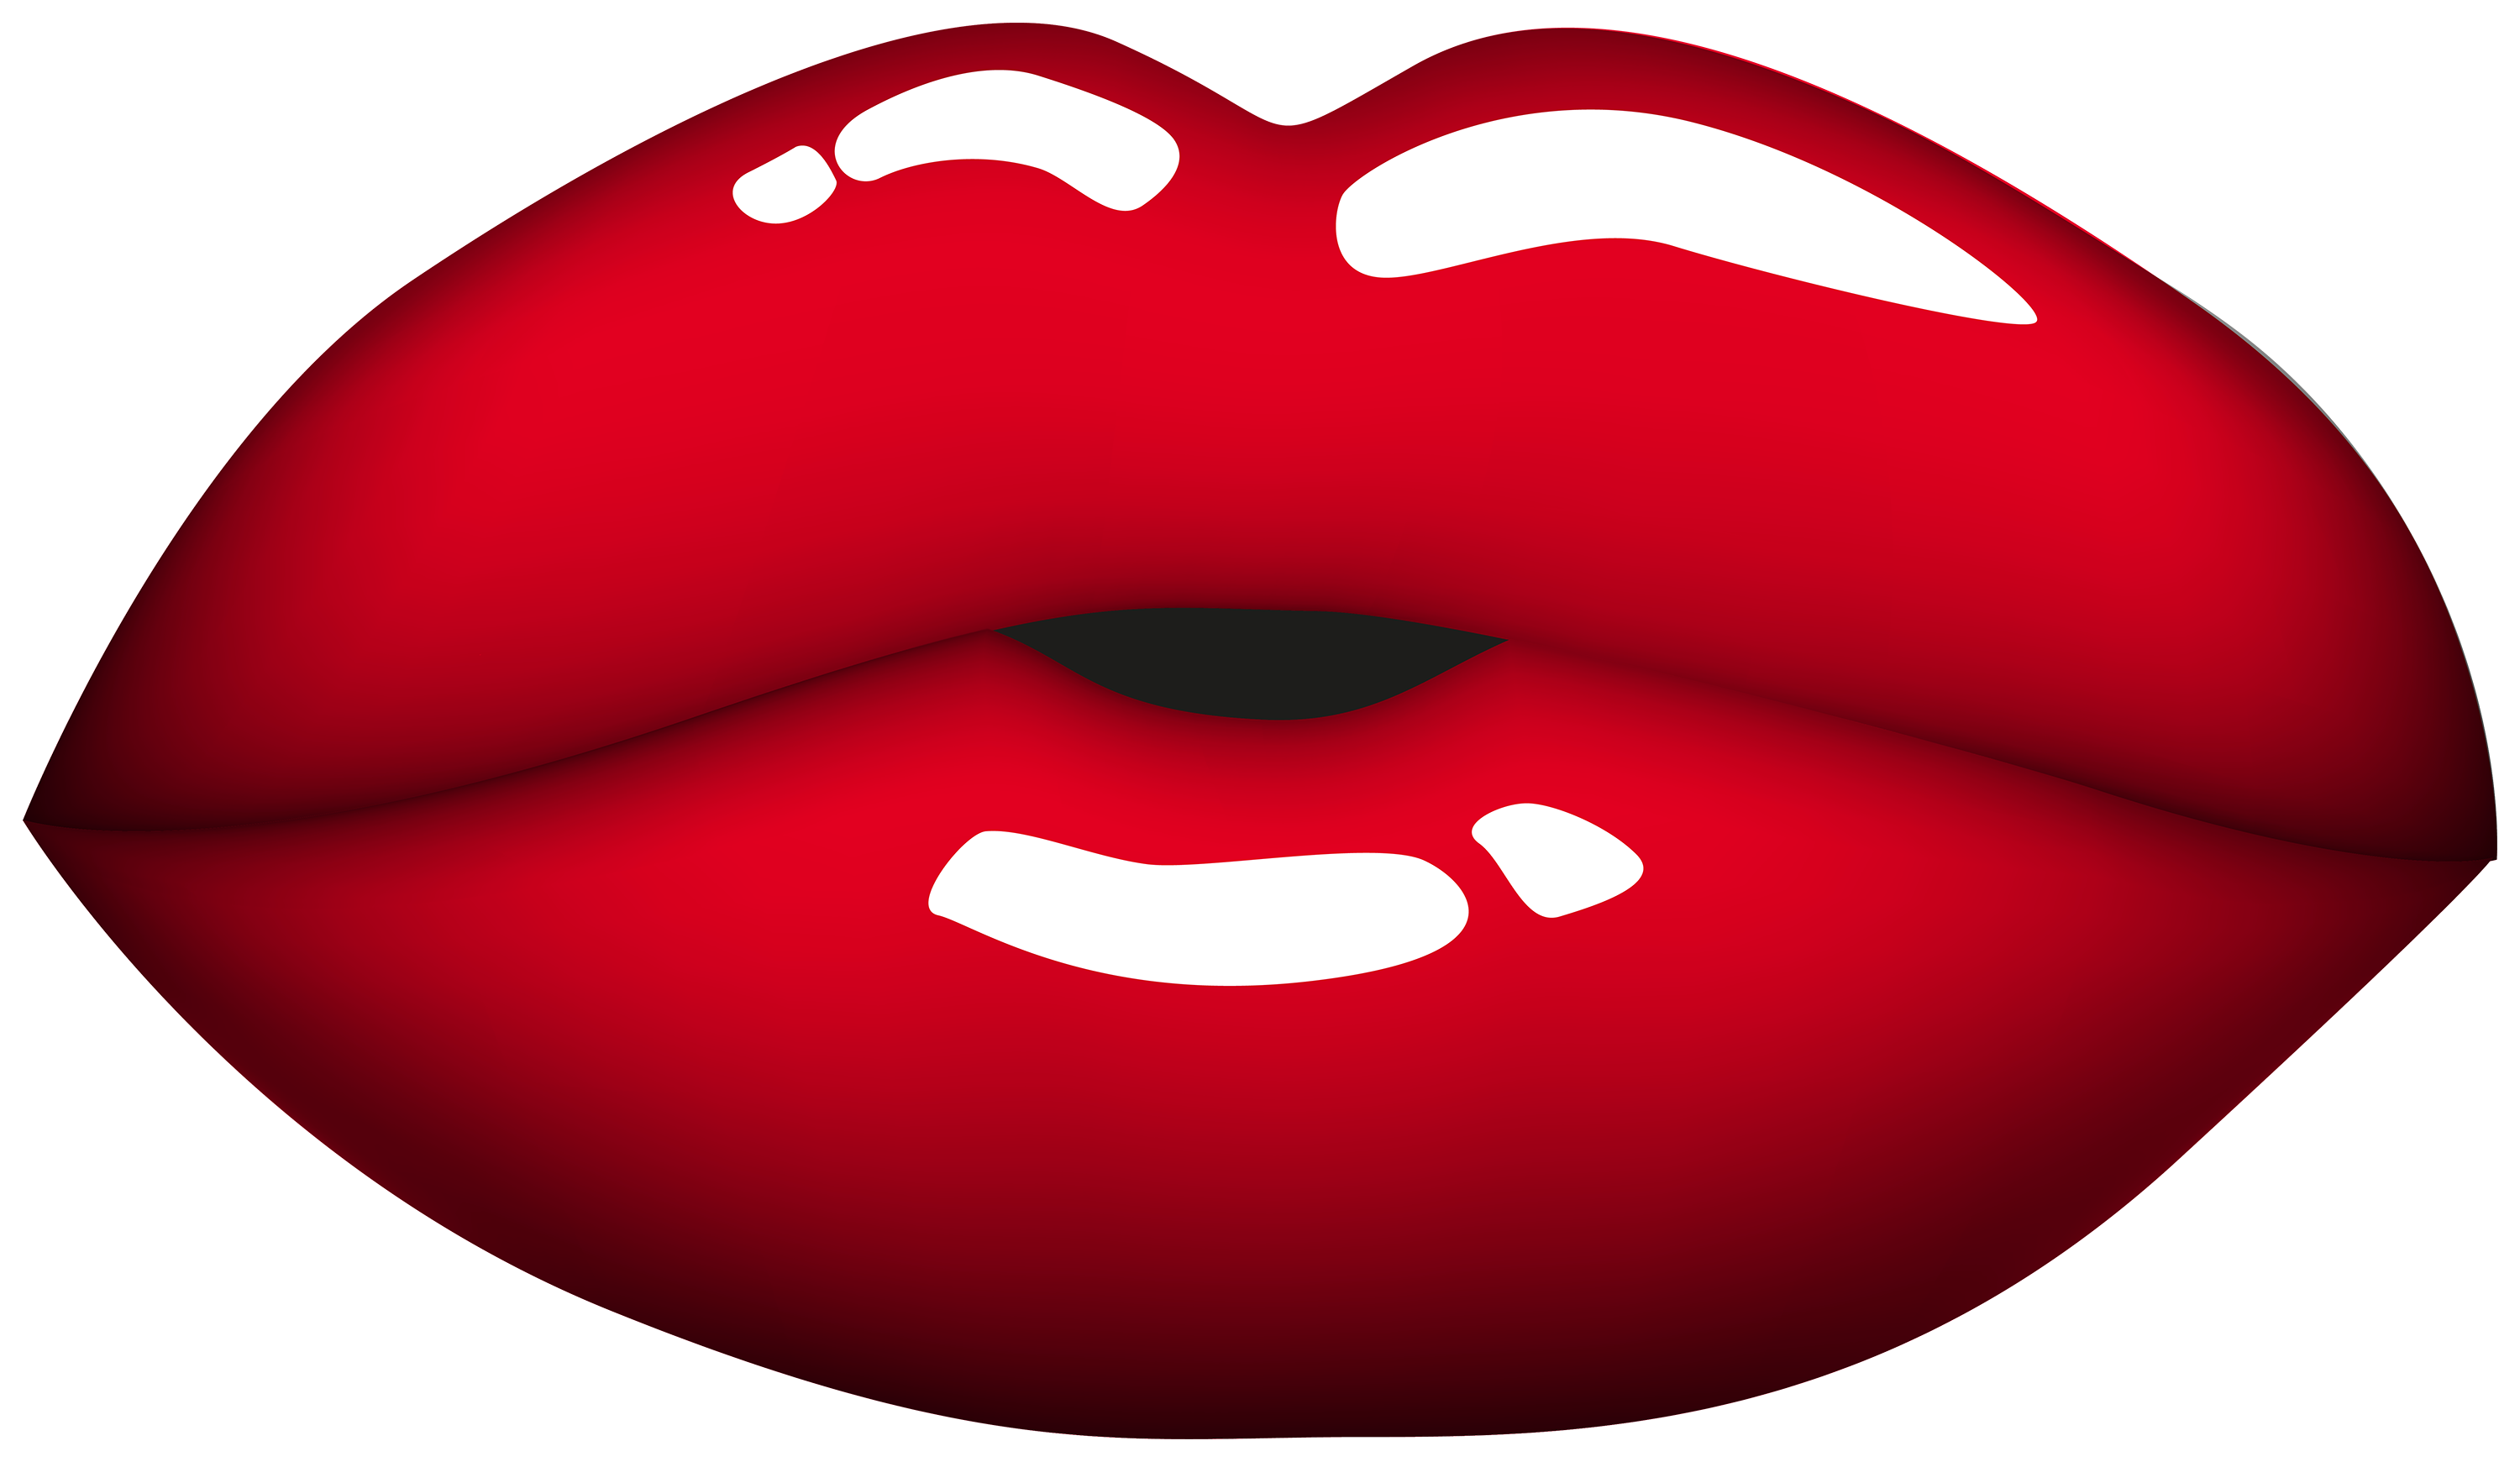 lips clipart at getdrawings com free for personal use lips clipart rh getdrawings com